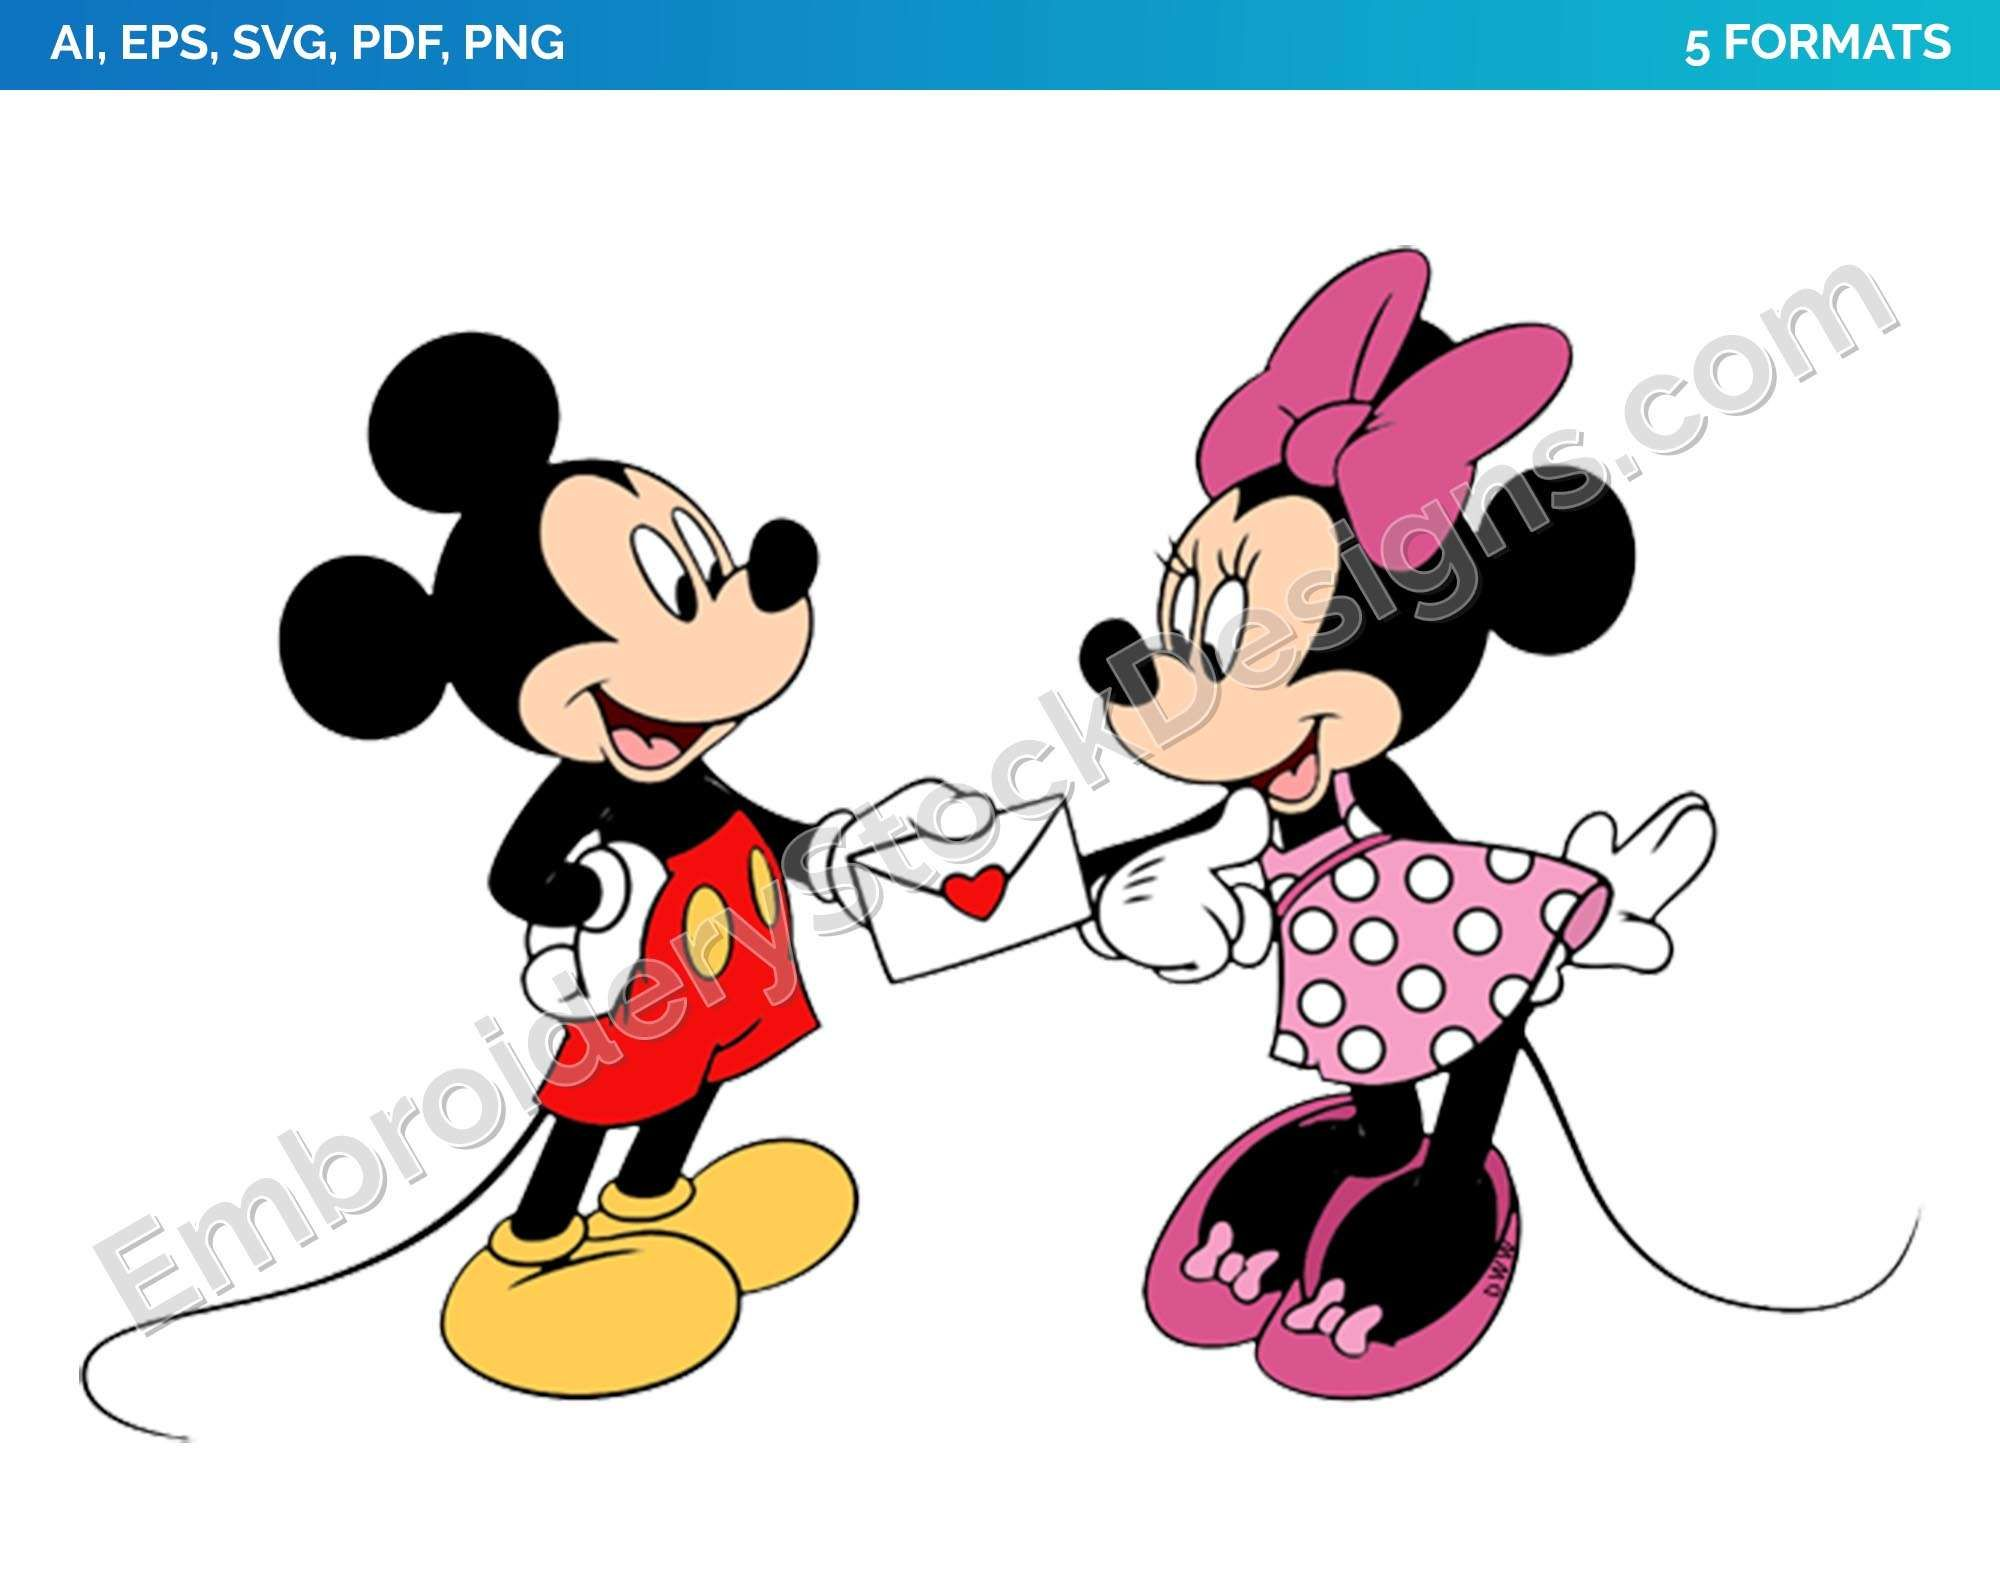 Mickey Minnie Valentine Card Valentine S Day Holiday Disney Character Designs As Svg Vector For Print In 5 Formats Dsnyh000658 Embroidery Stock Designs Character Design Disney Valentines Easy Drawings